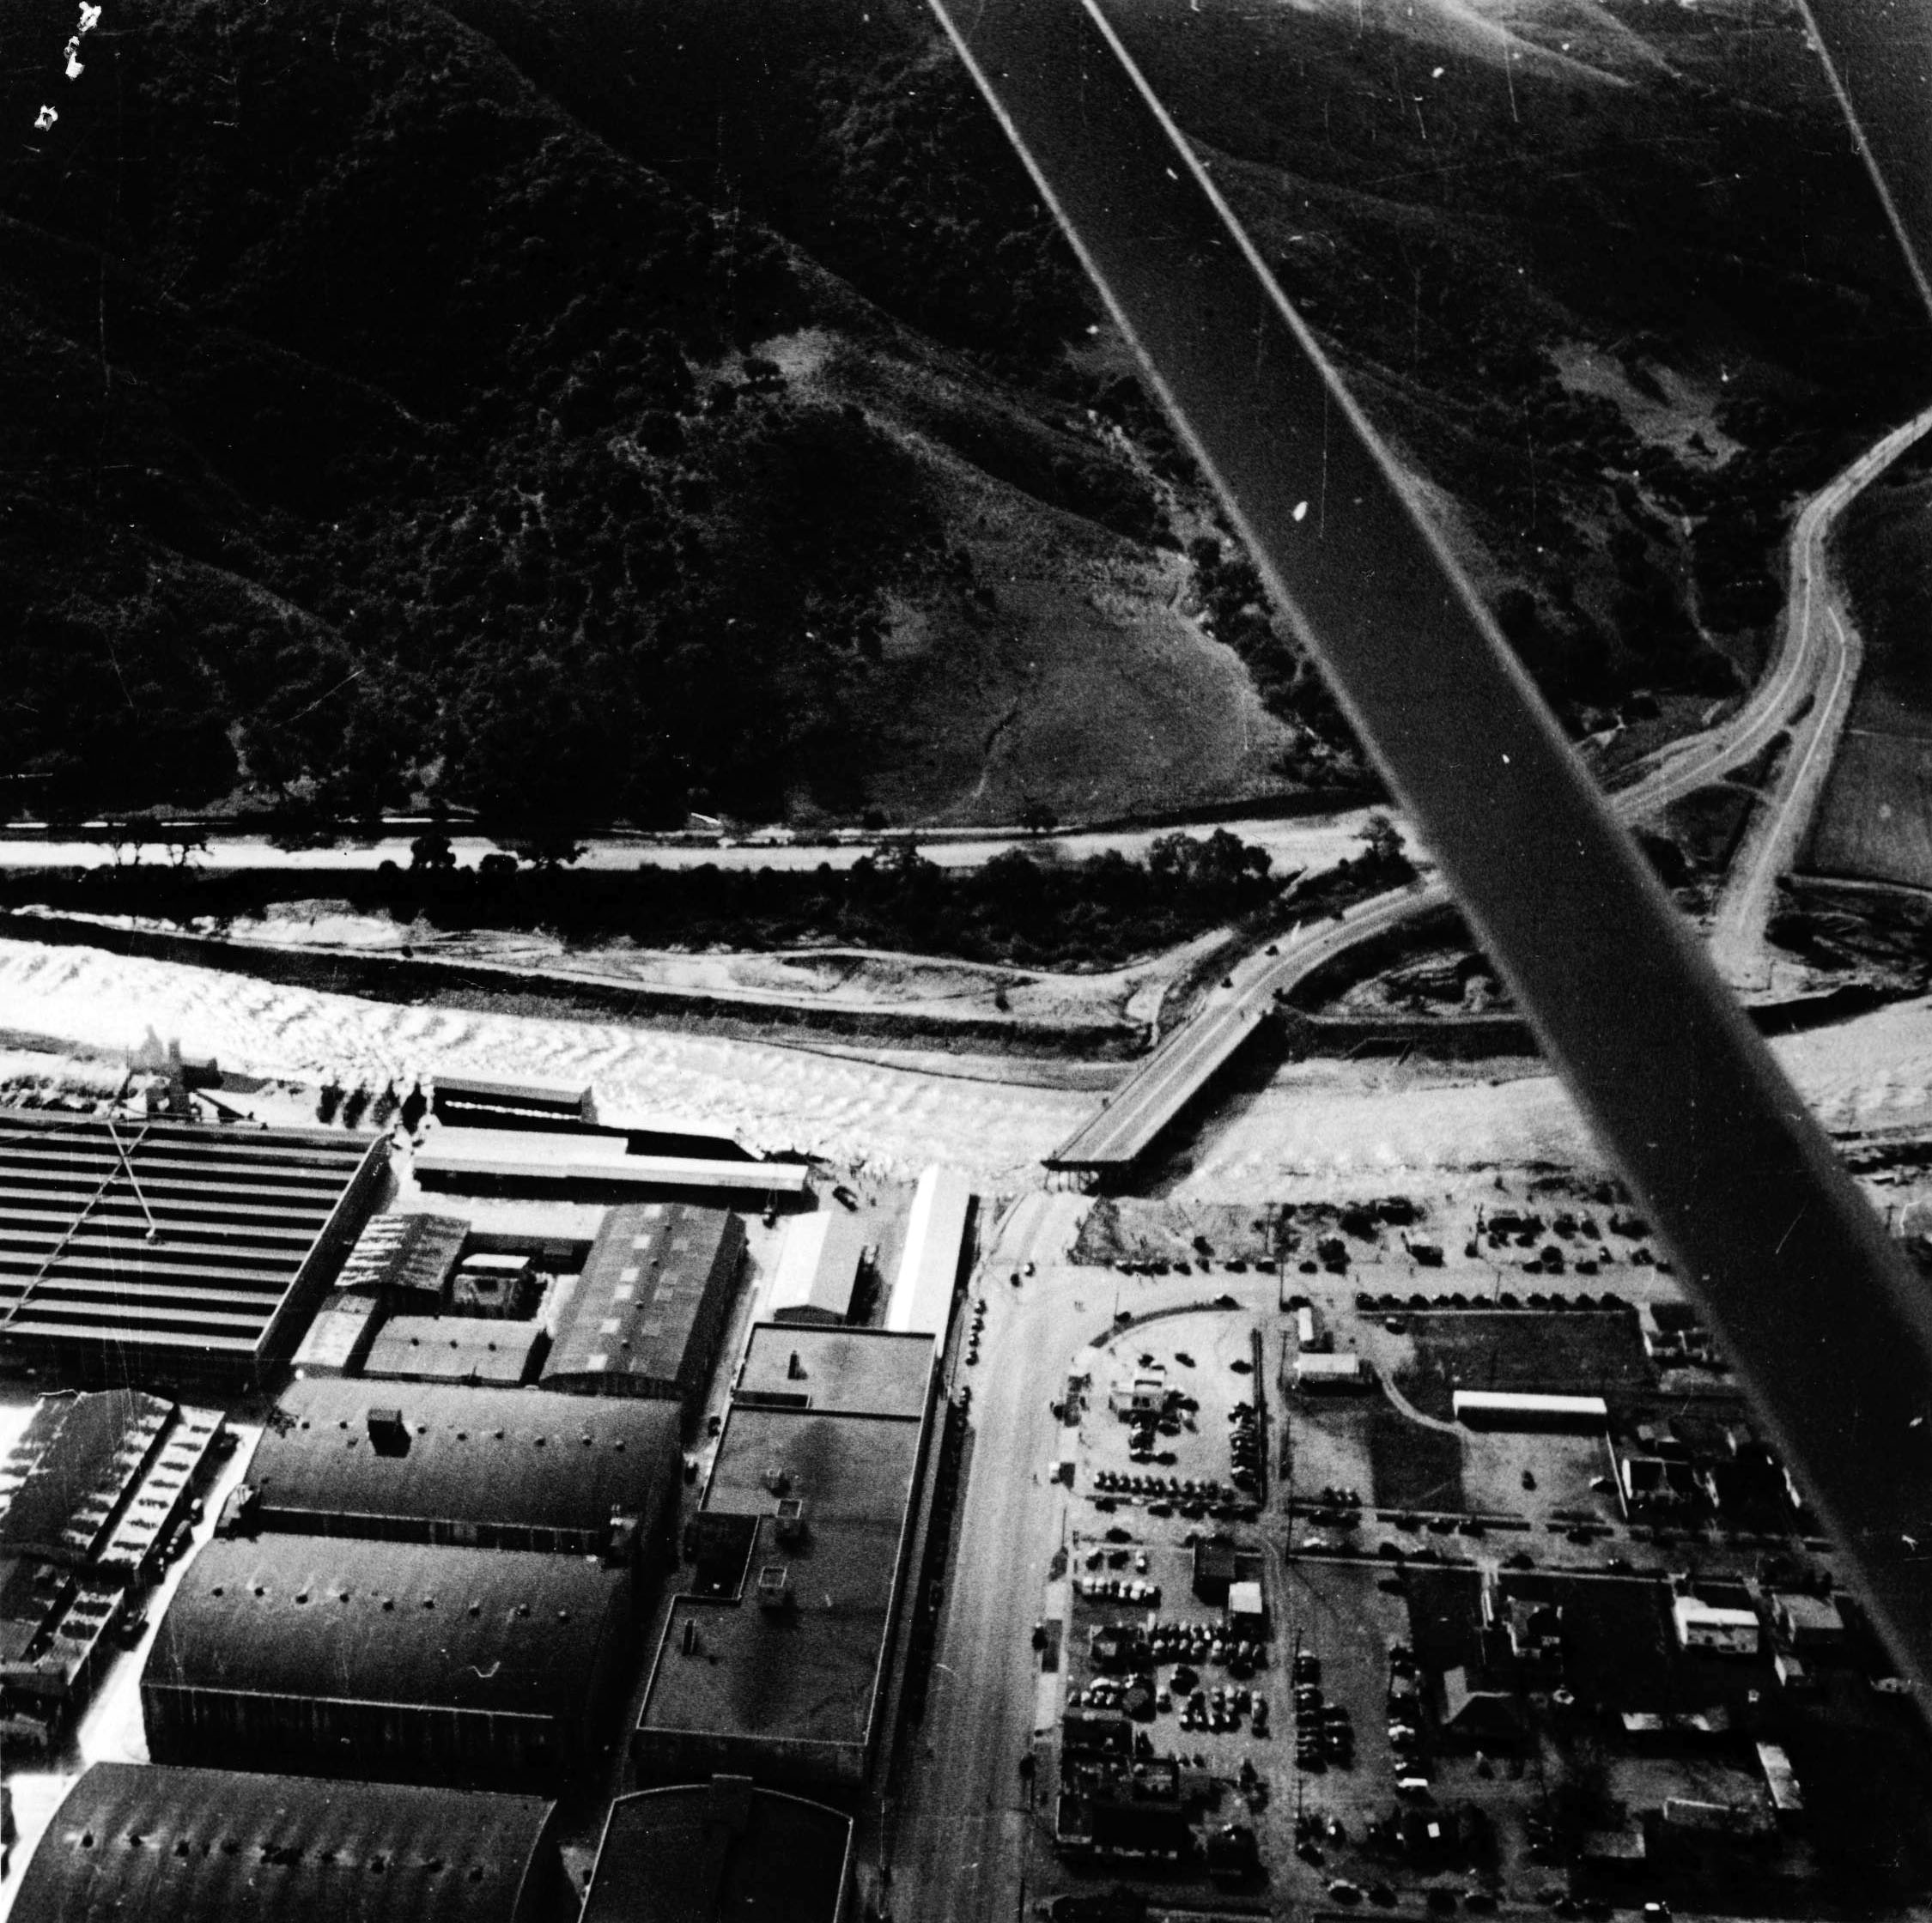 Aerial view of the collapsed Barham Bridge at Warner Bros. studios in Burbank after the flood of 1938